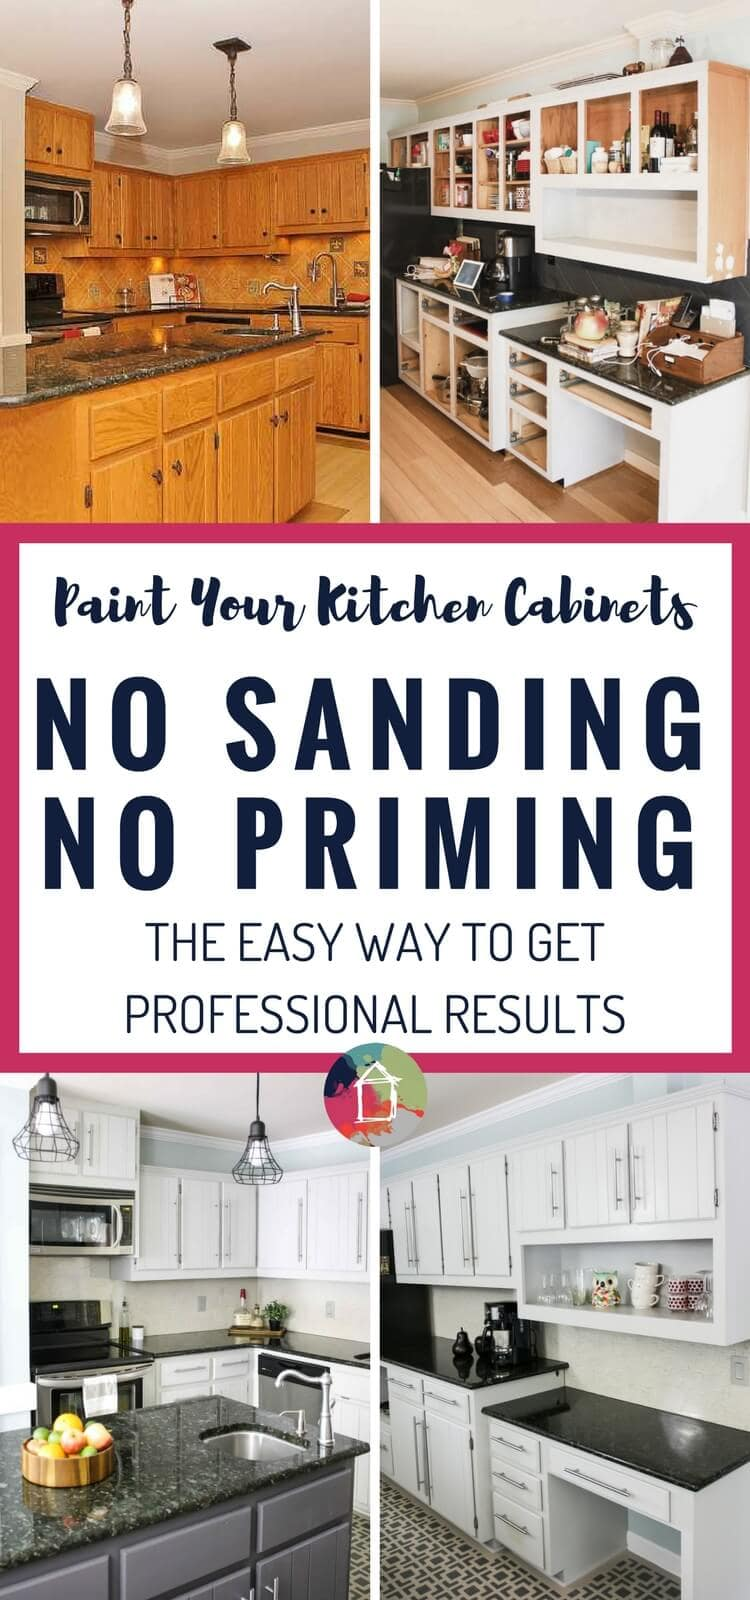 how to paint kitchen cabinets without priming or sanding